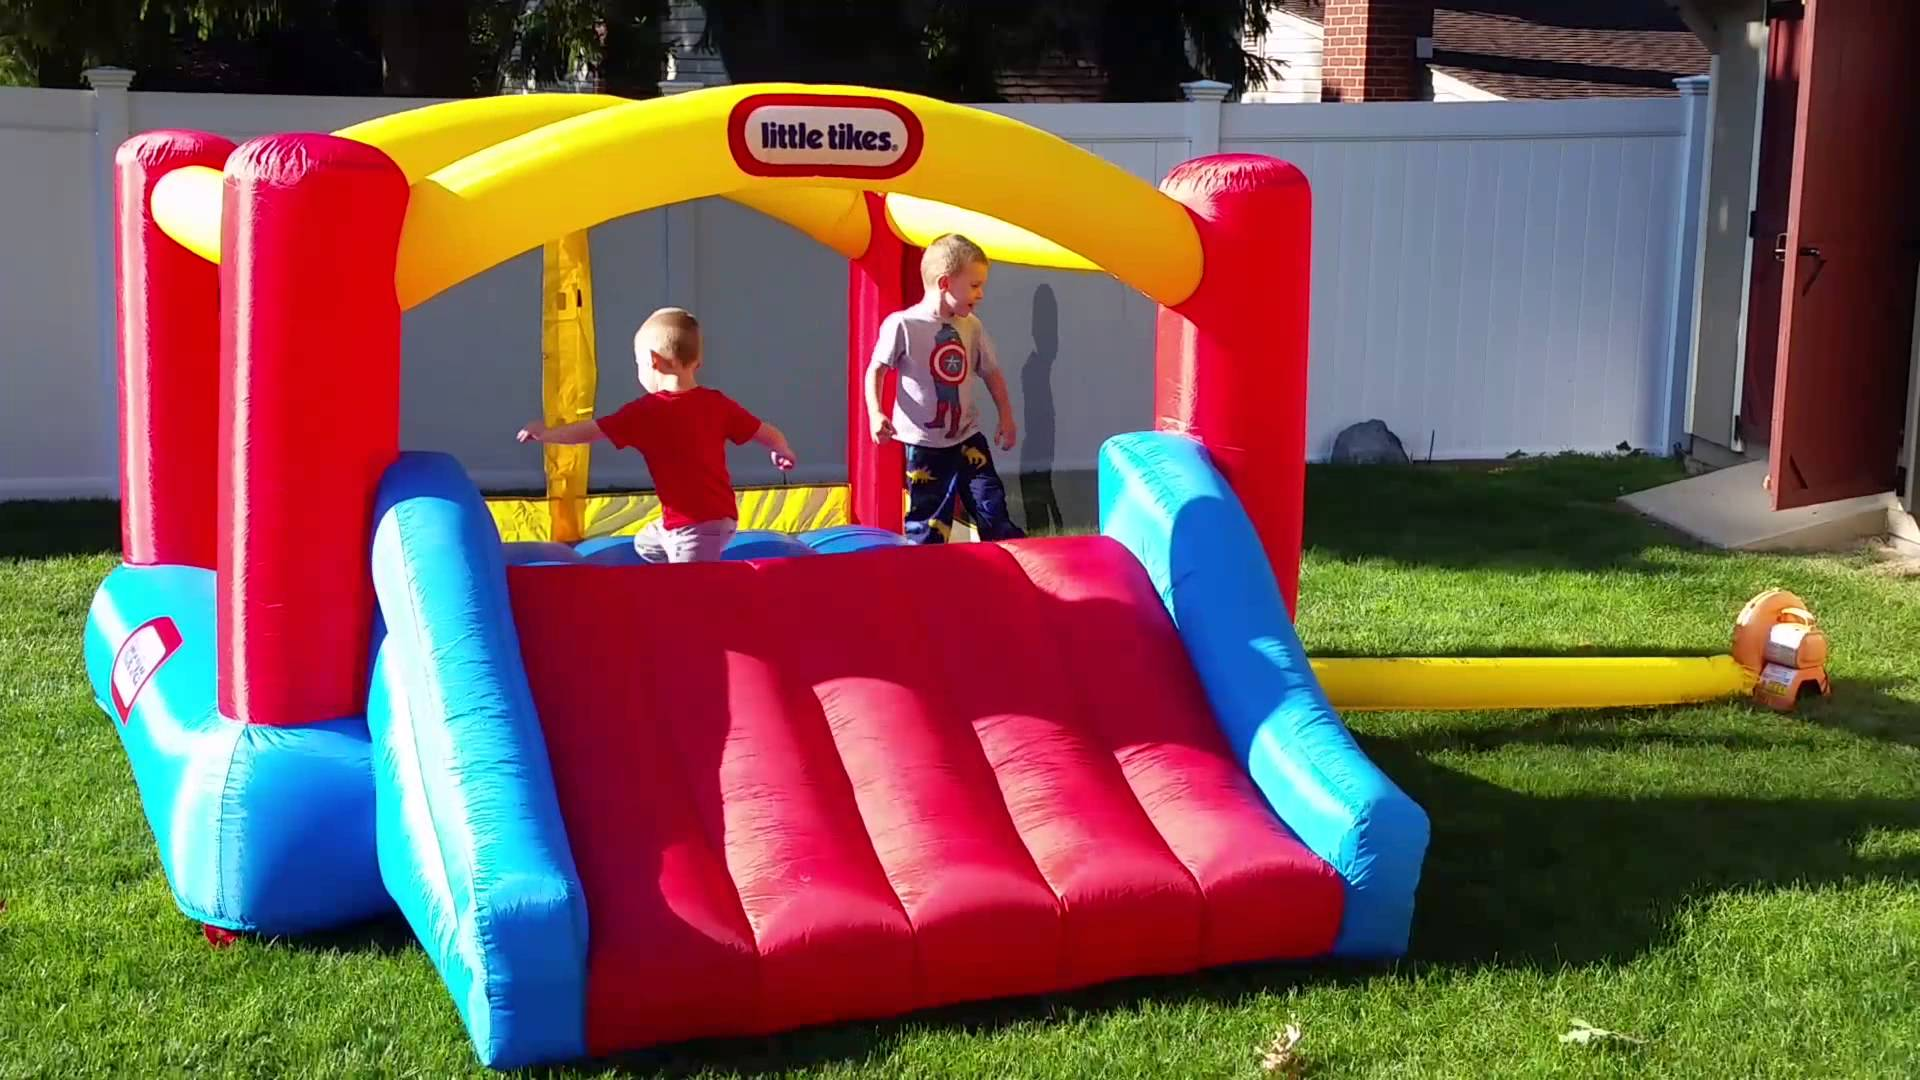 fancy little tikes bounce house made of caoutchouc with slide for play yard ideas